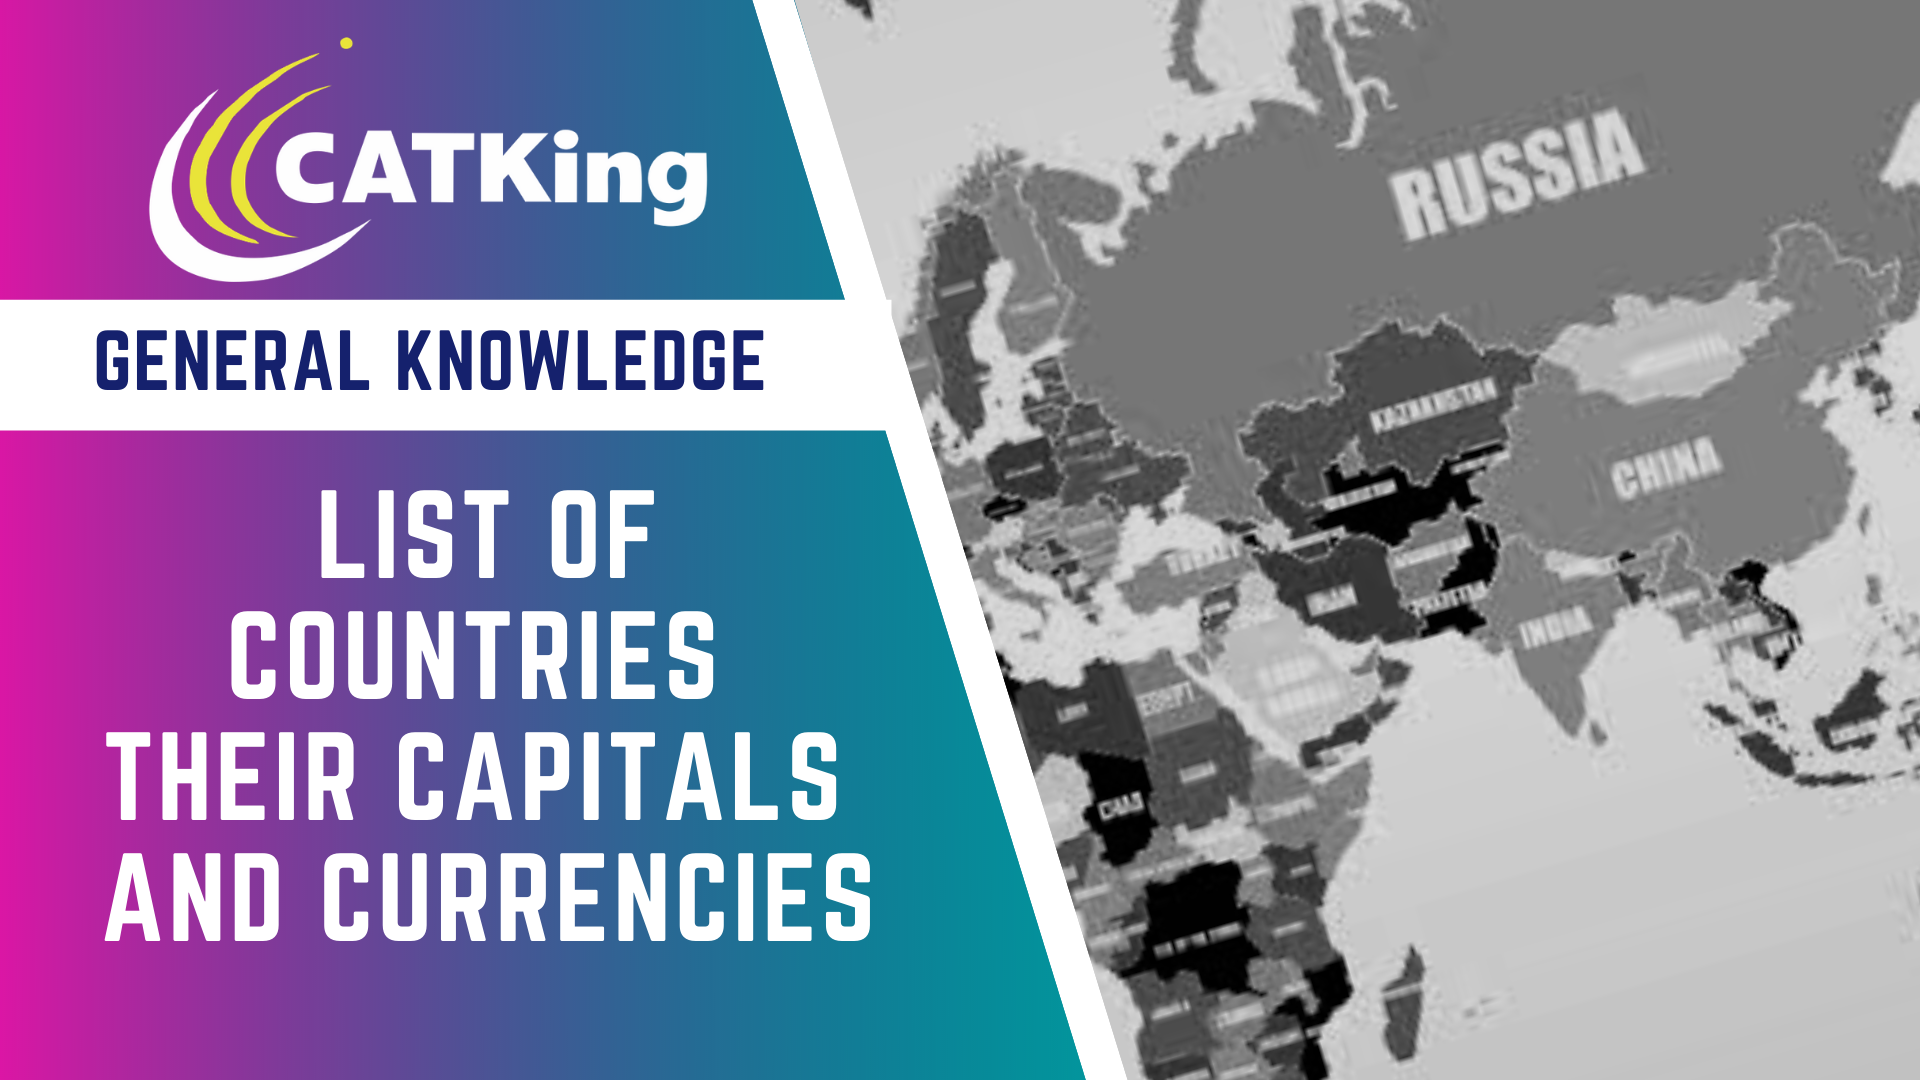 List Of All Countries With Their Capitals And Currencies Catking Educare